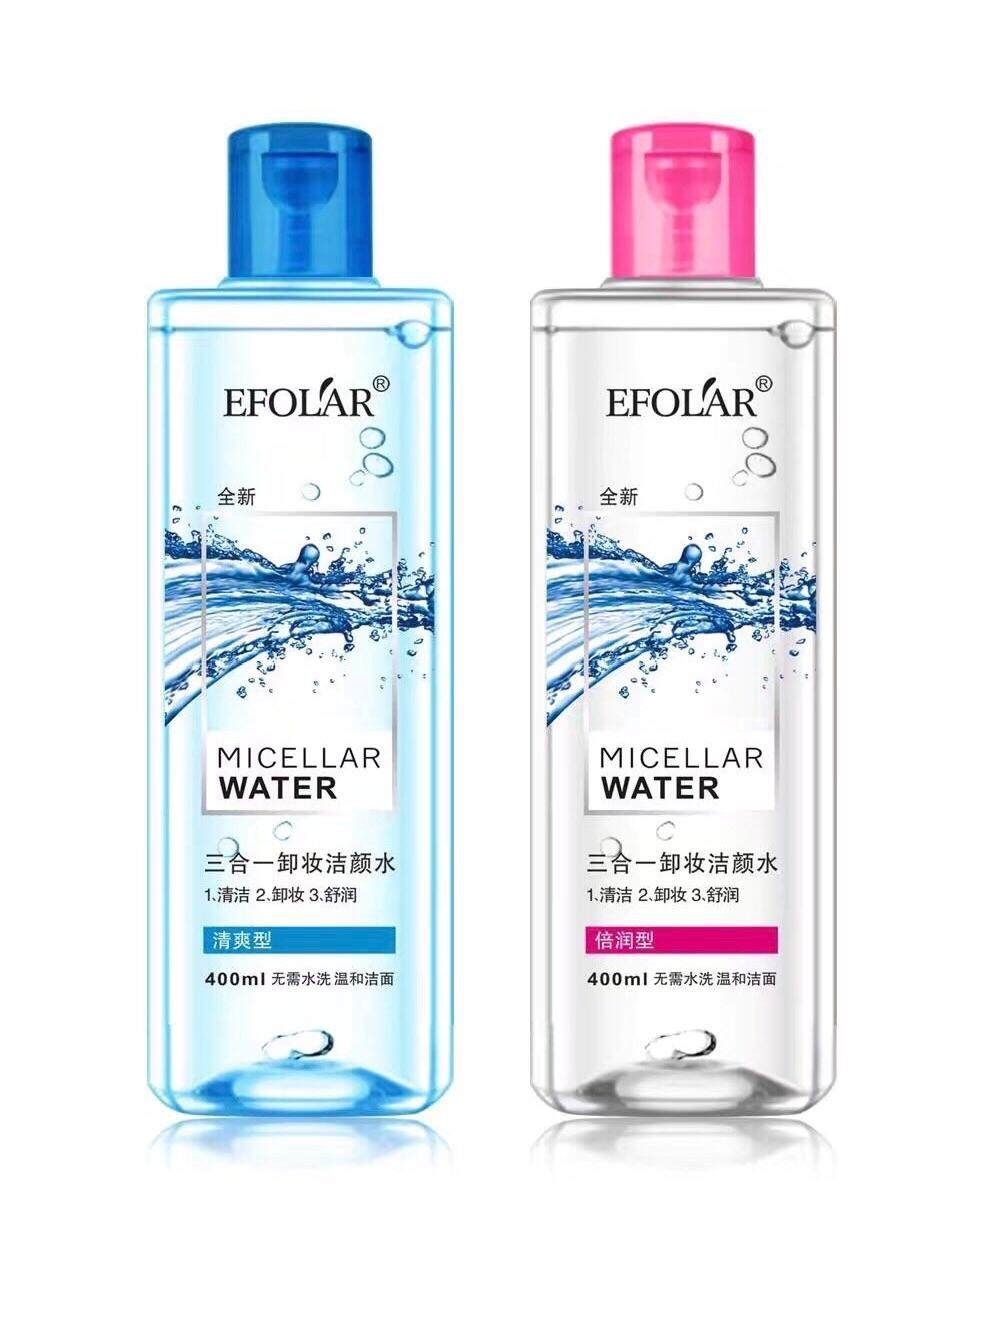 Efolar Micellar Water 400ml Makeup Remover Cosmetic + Free Gift